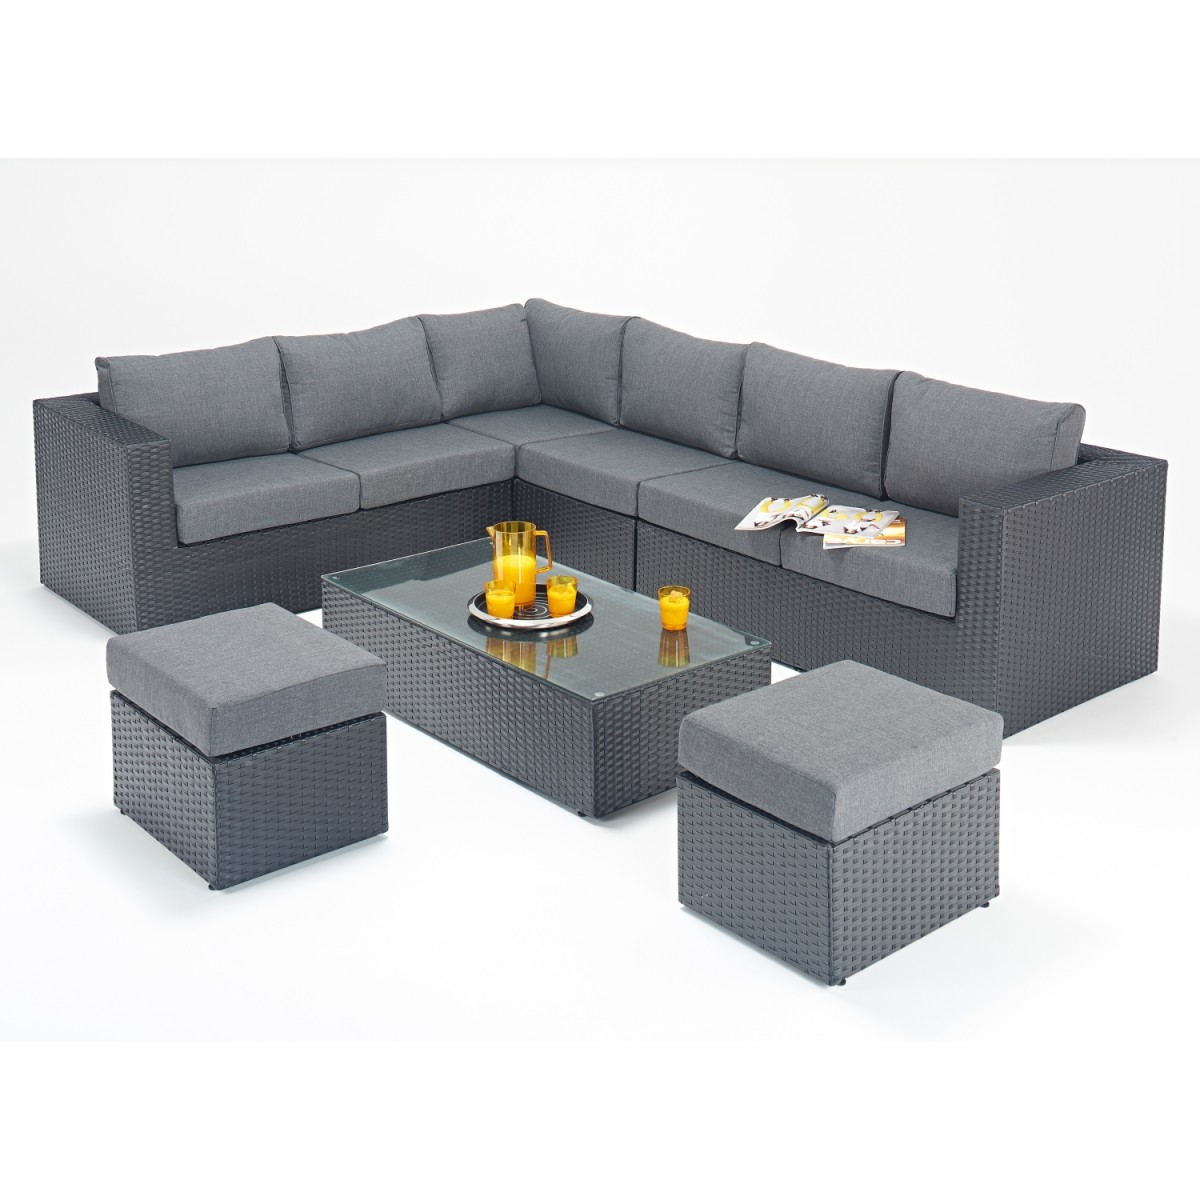 Rattan Set Prestige Large Corner Sofa Set Wgf 302 Left Hand